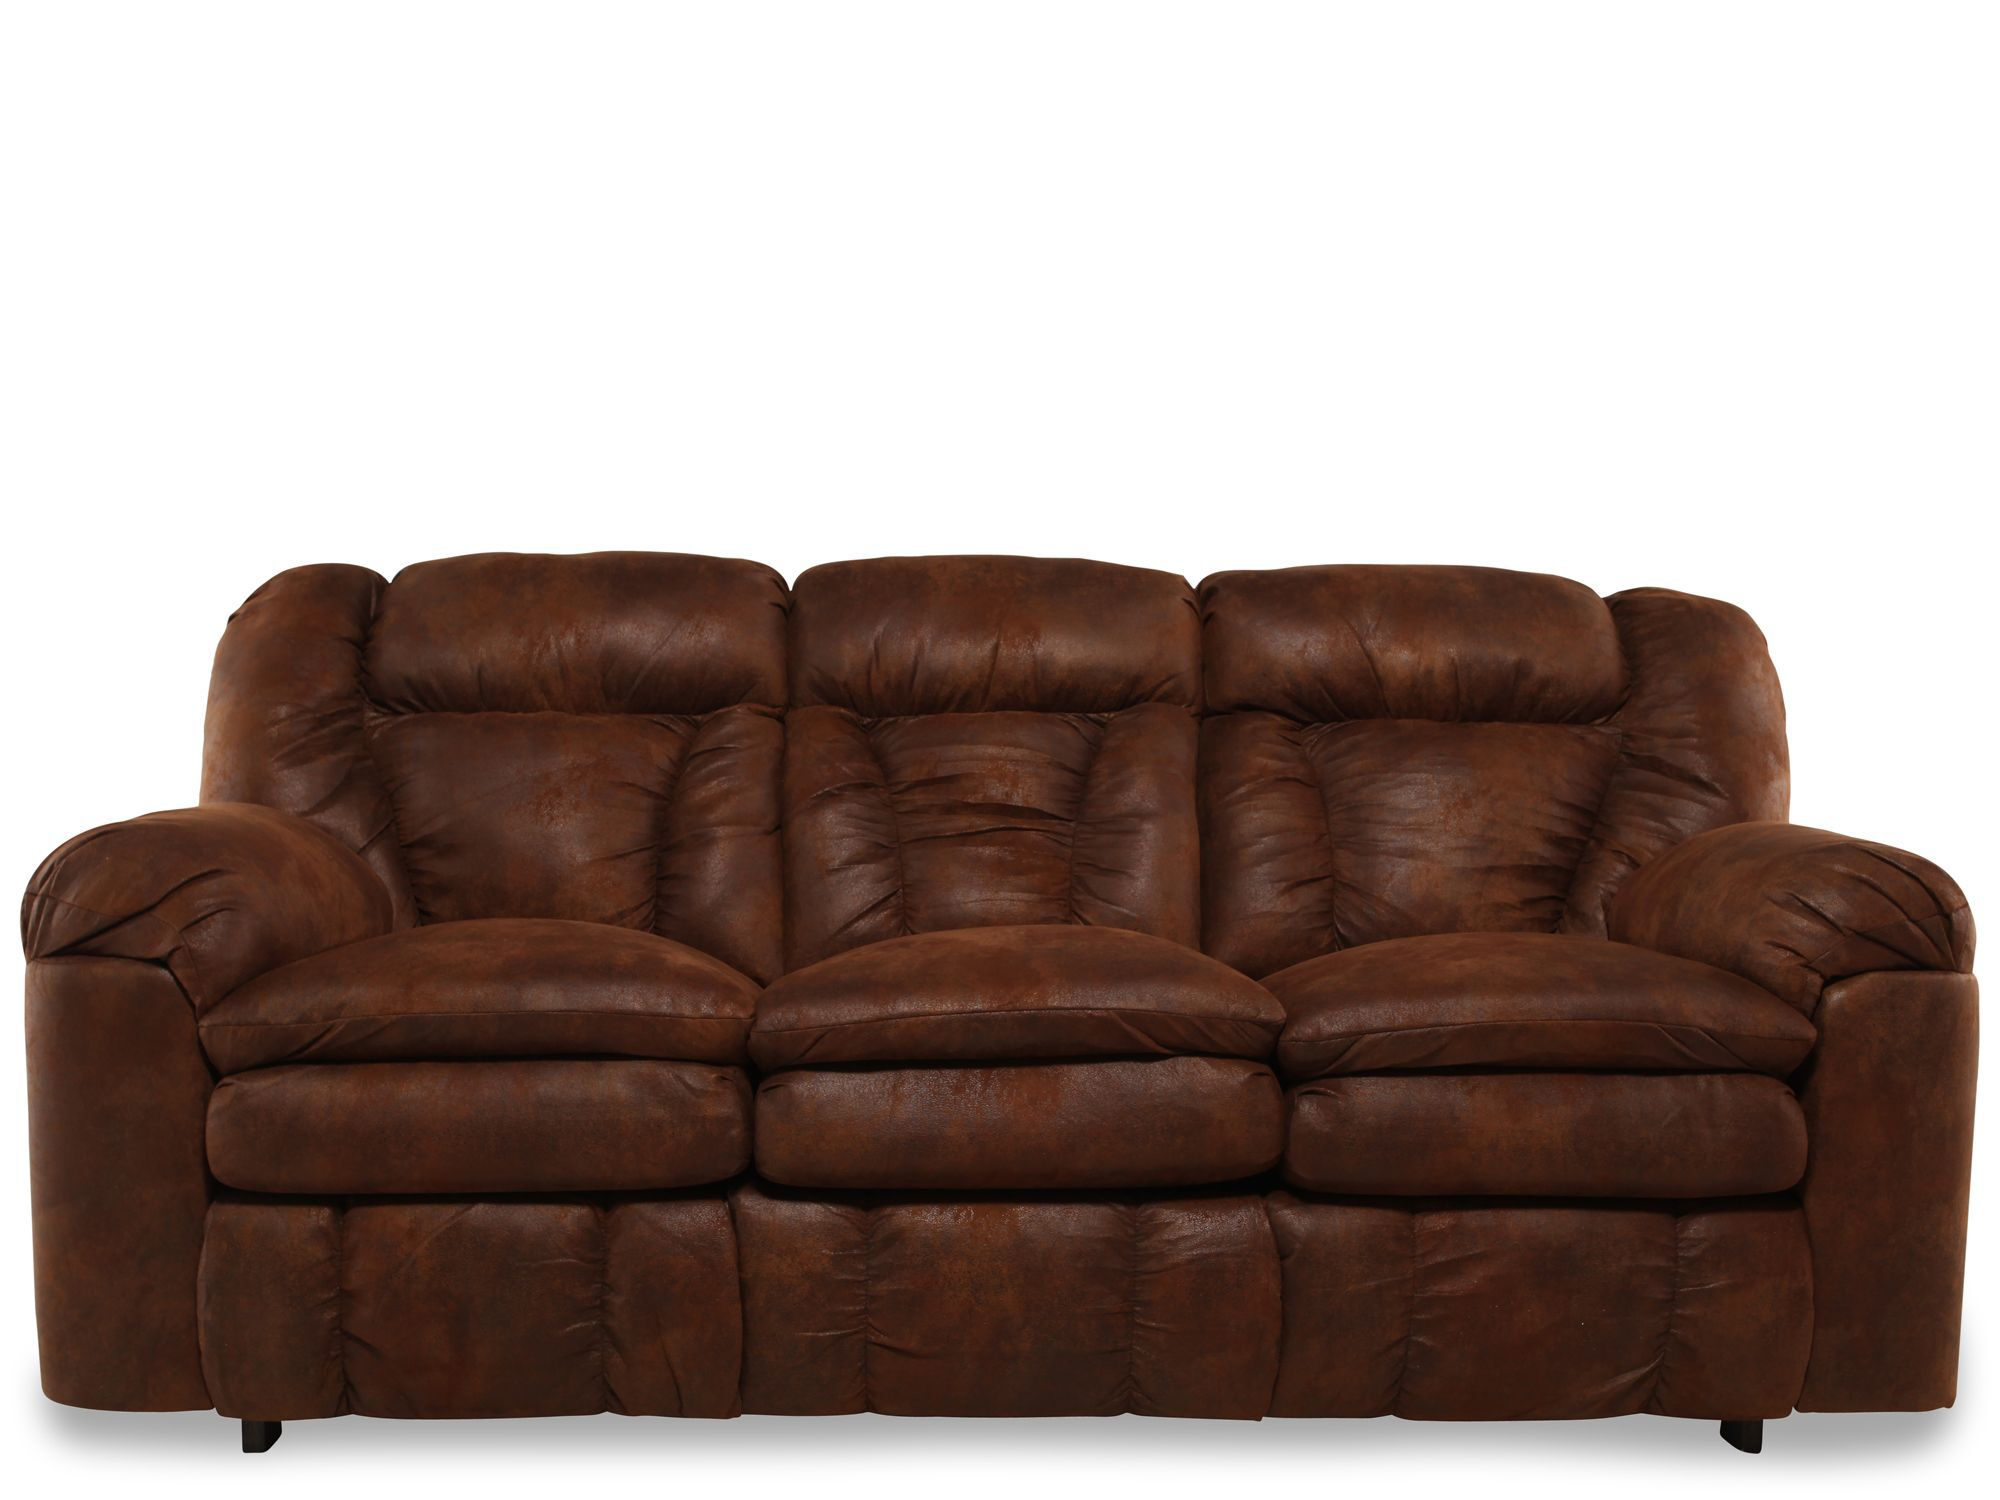 lane sleeper sofa queen recliner talon coffee mathis brothers furniture